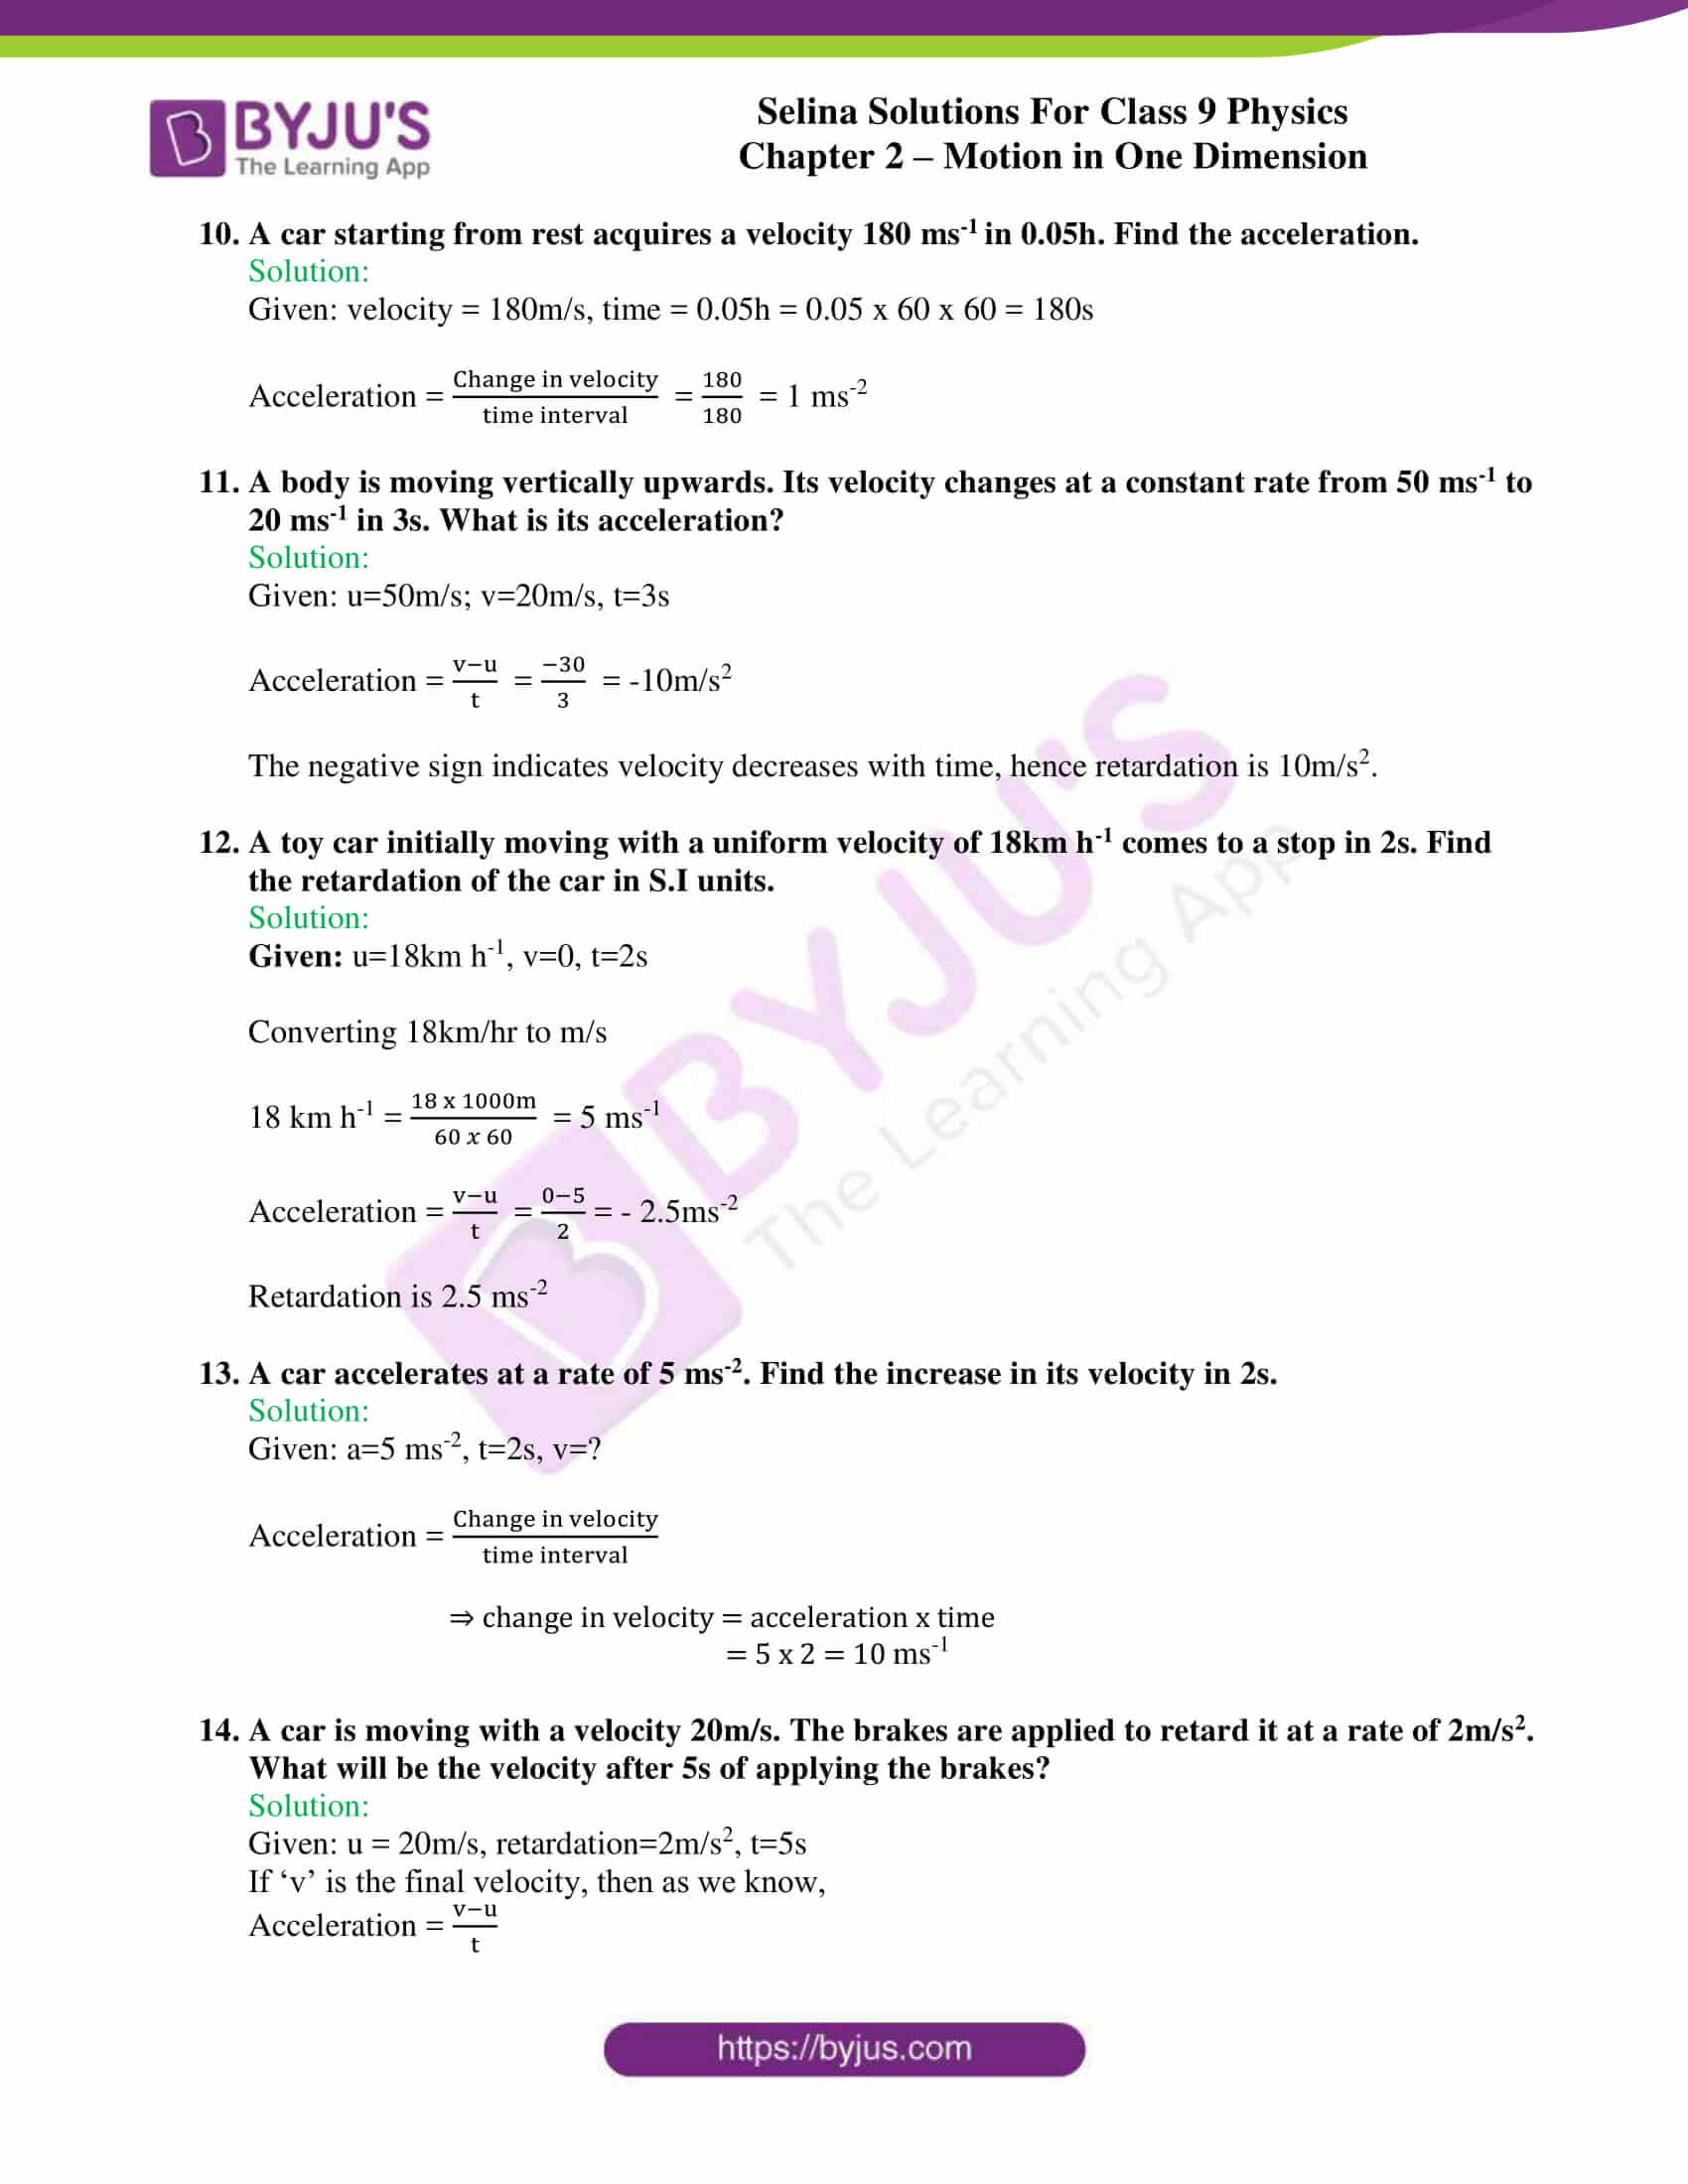 selina solutions class 9 physics chapter 2 Motion in One Dimension part 10